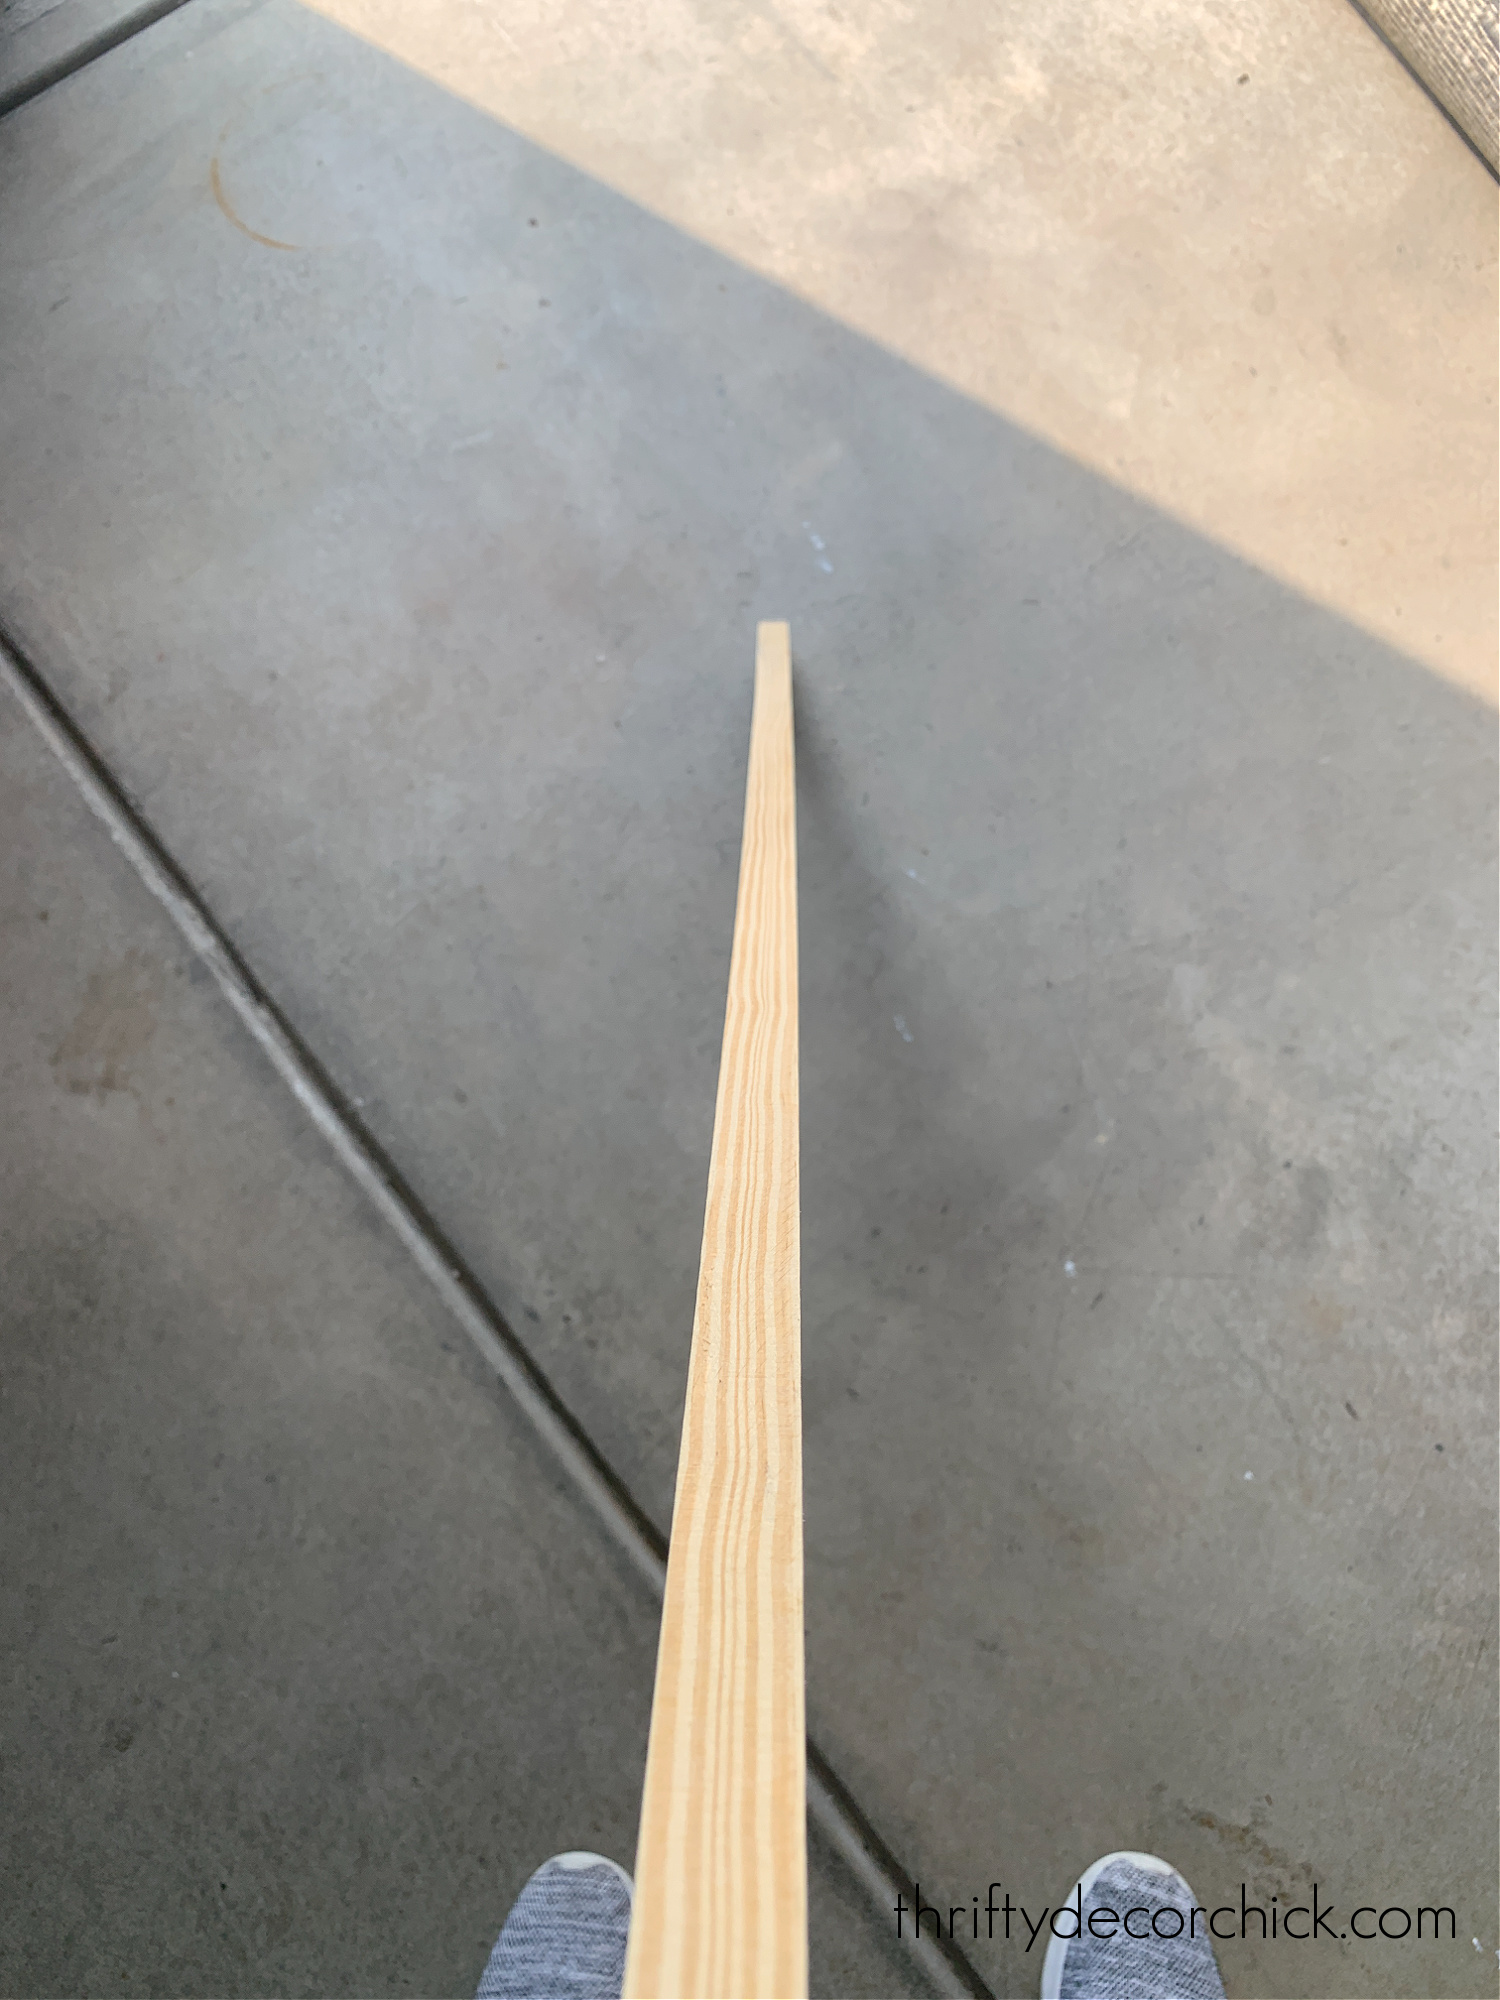 how to check wood for bowing